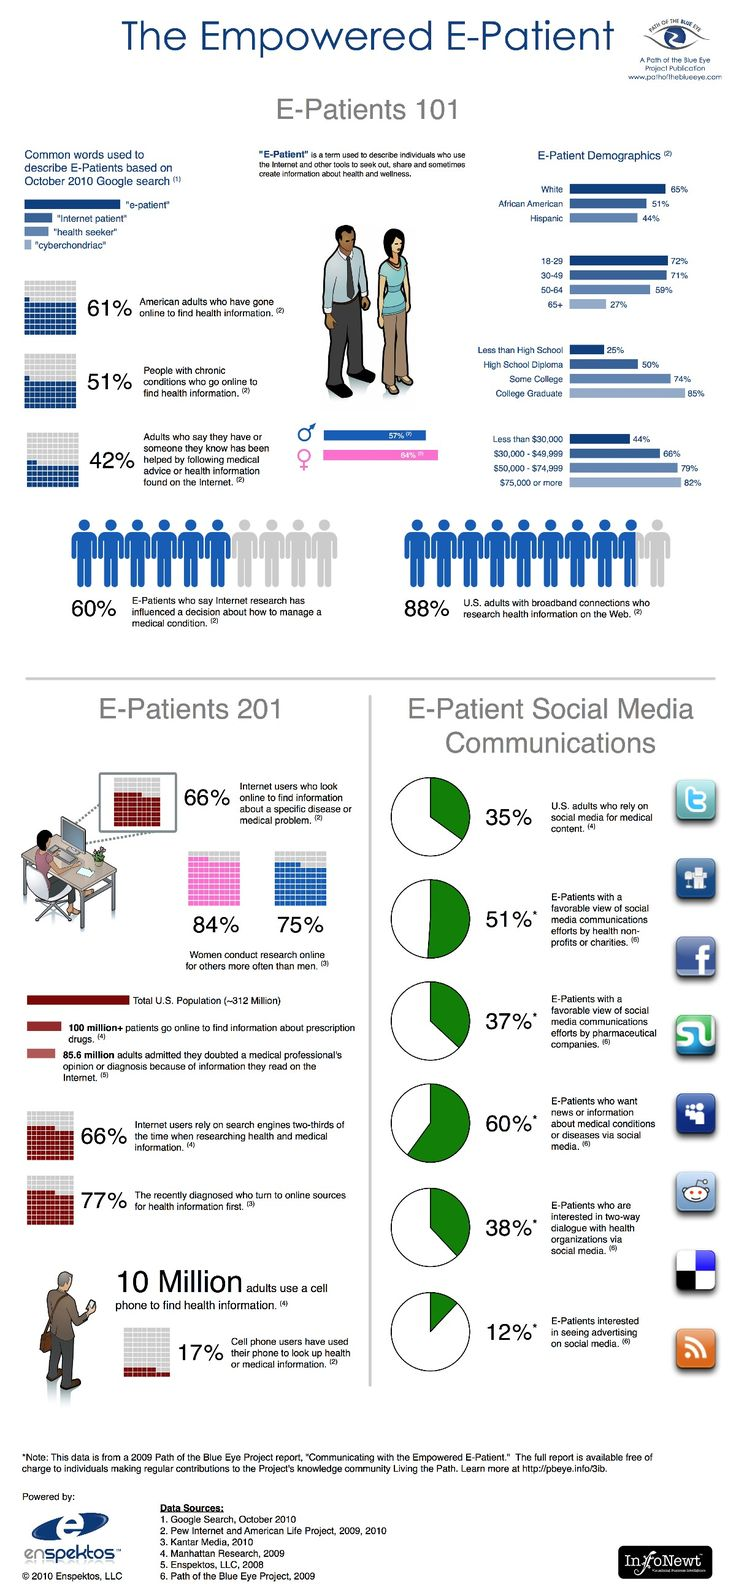 The Empowered e-Patient: More Health-Related Infographics #OnlineHealthcareMarketingHub #OnlineHospitalMarketing